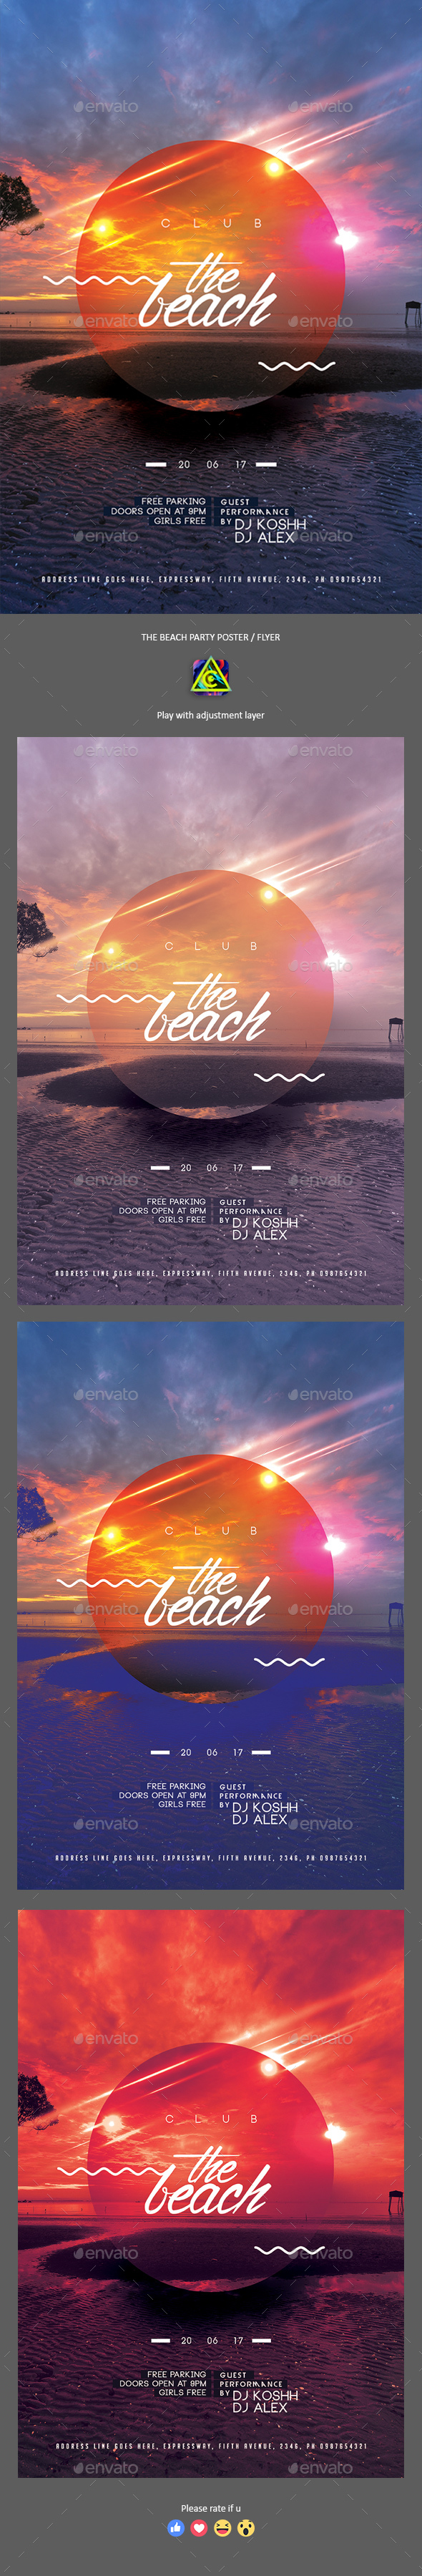 The Beach Poster / Flyer - Clubs & Parties Events